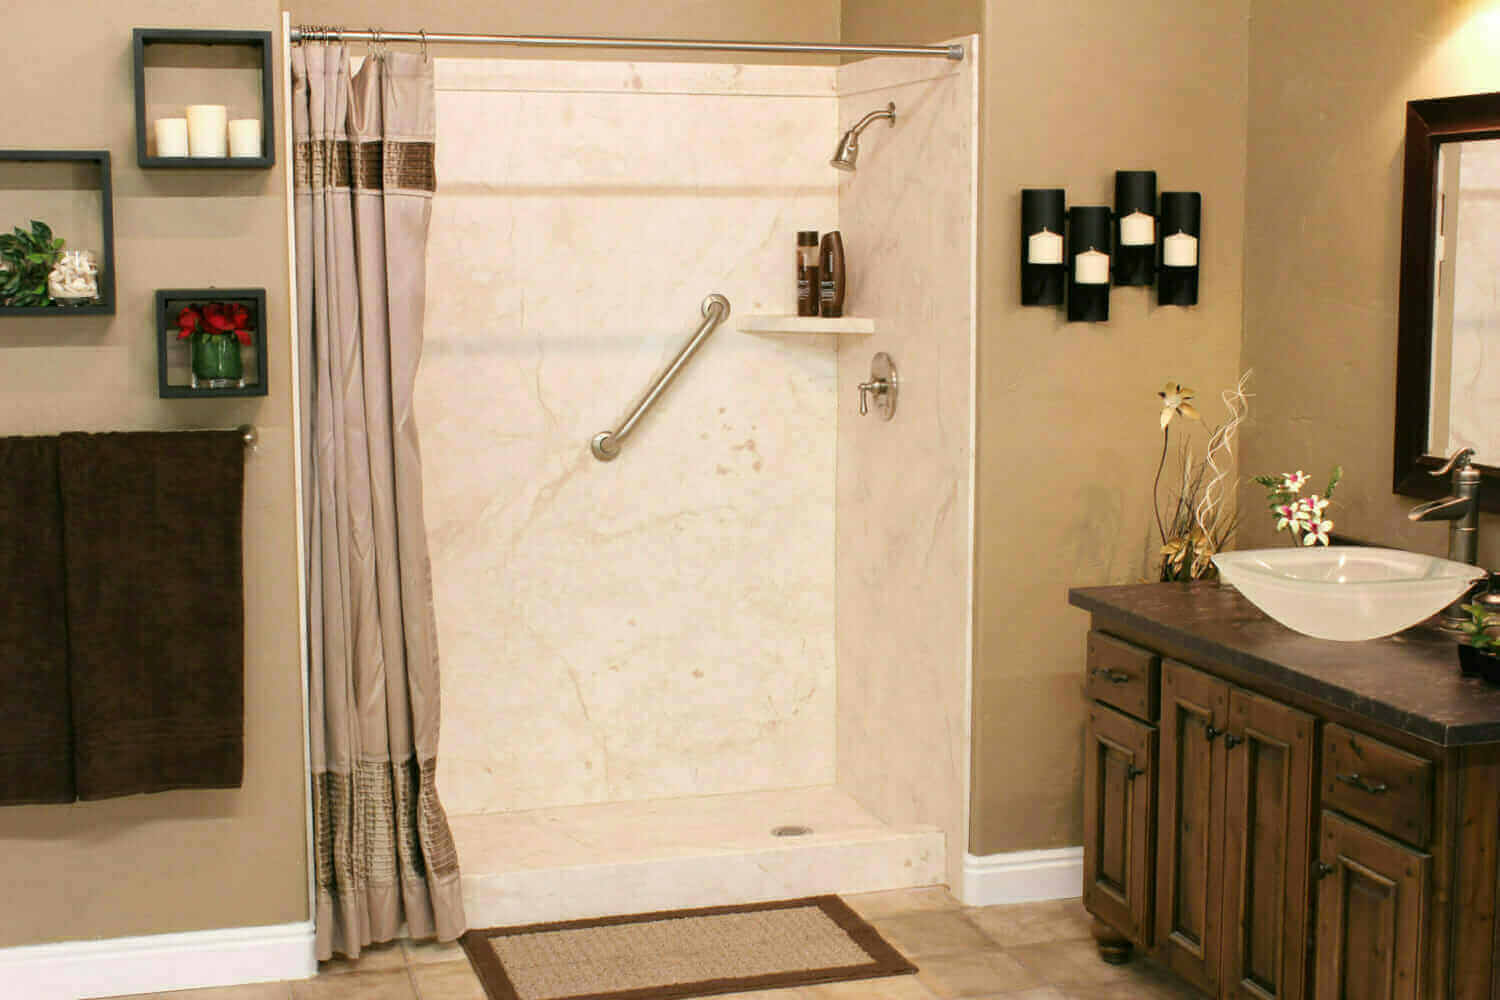 Bathroom Remodeling Delaware delaware county | five star bath solutions of delaware county